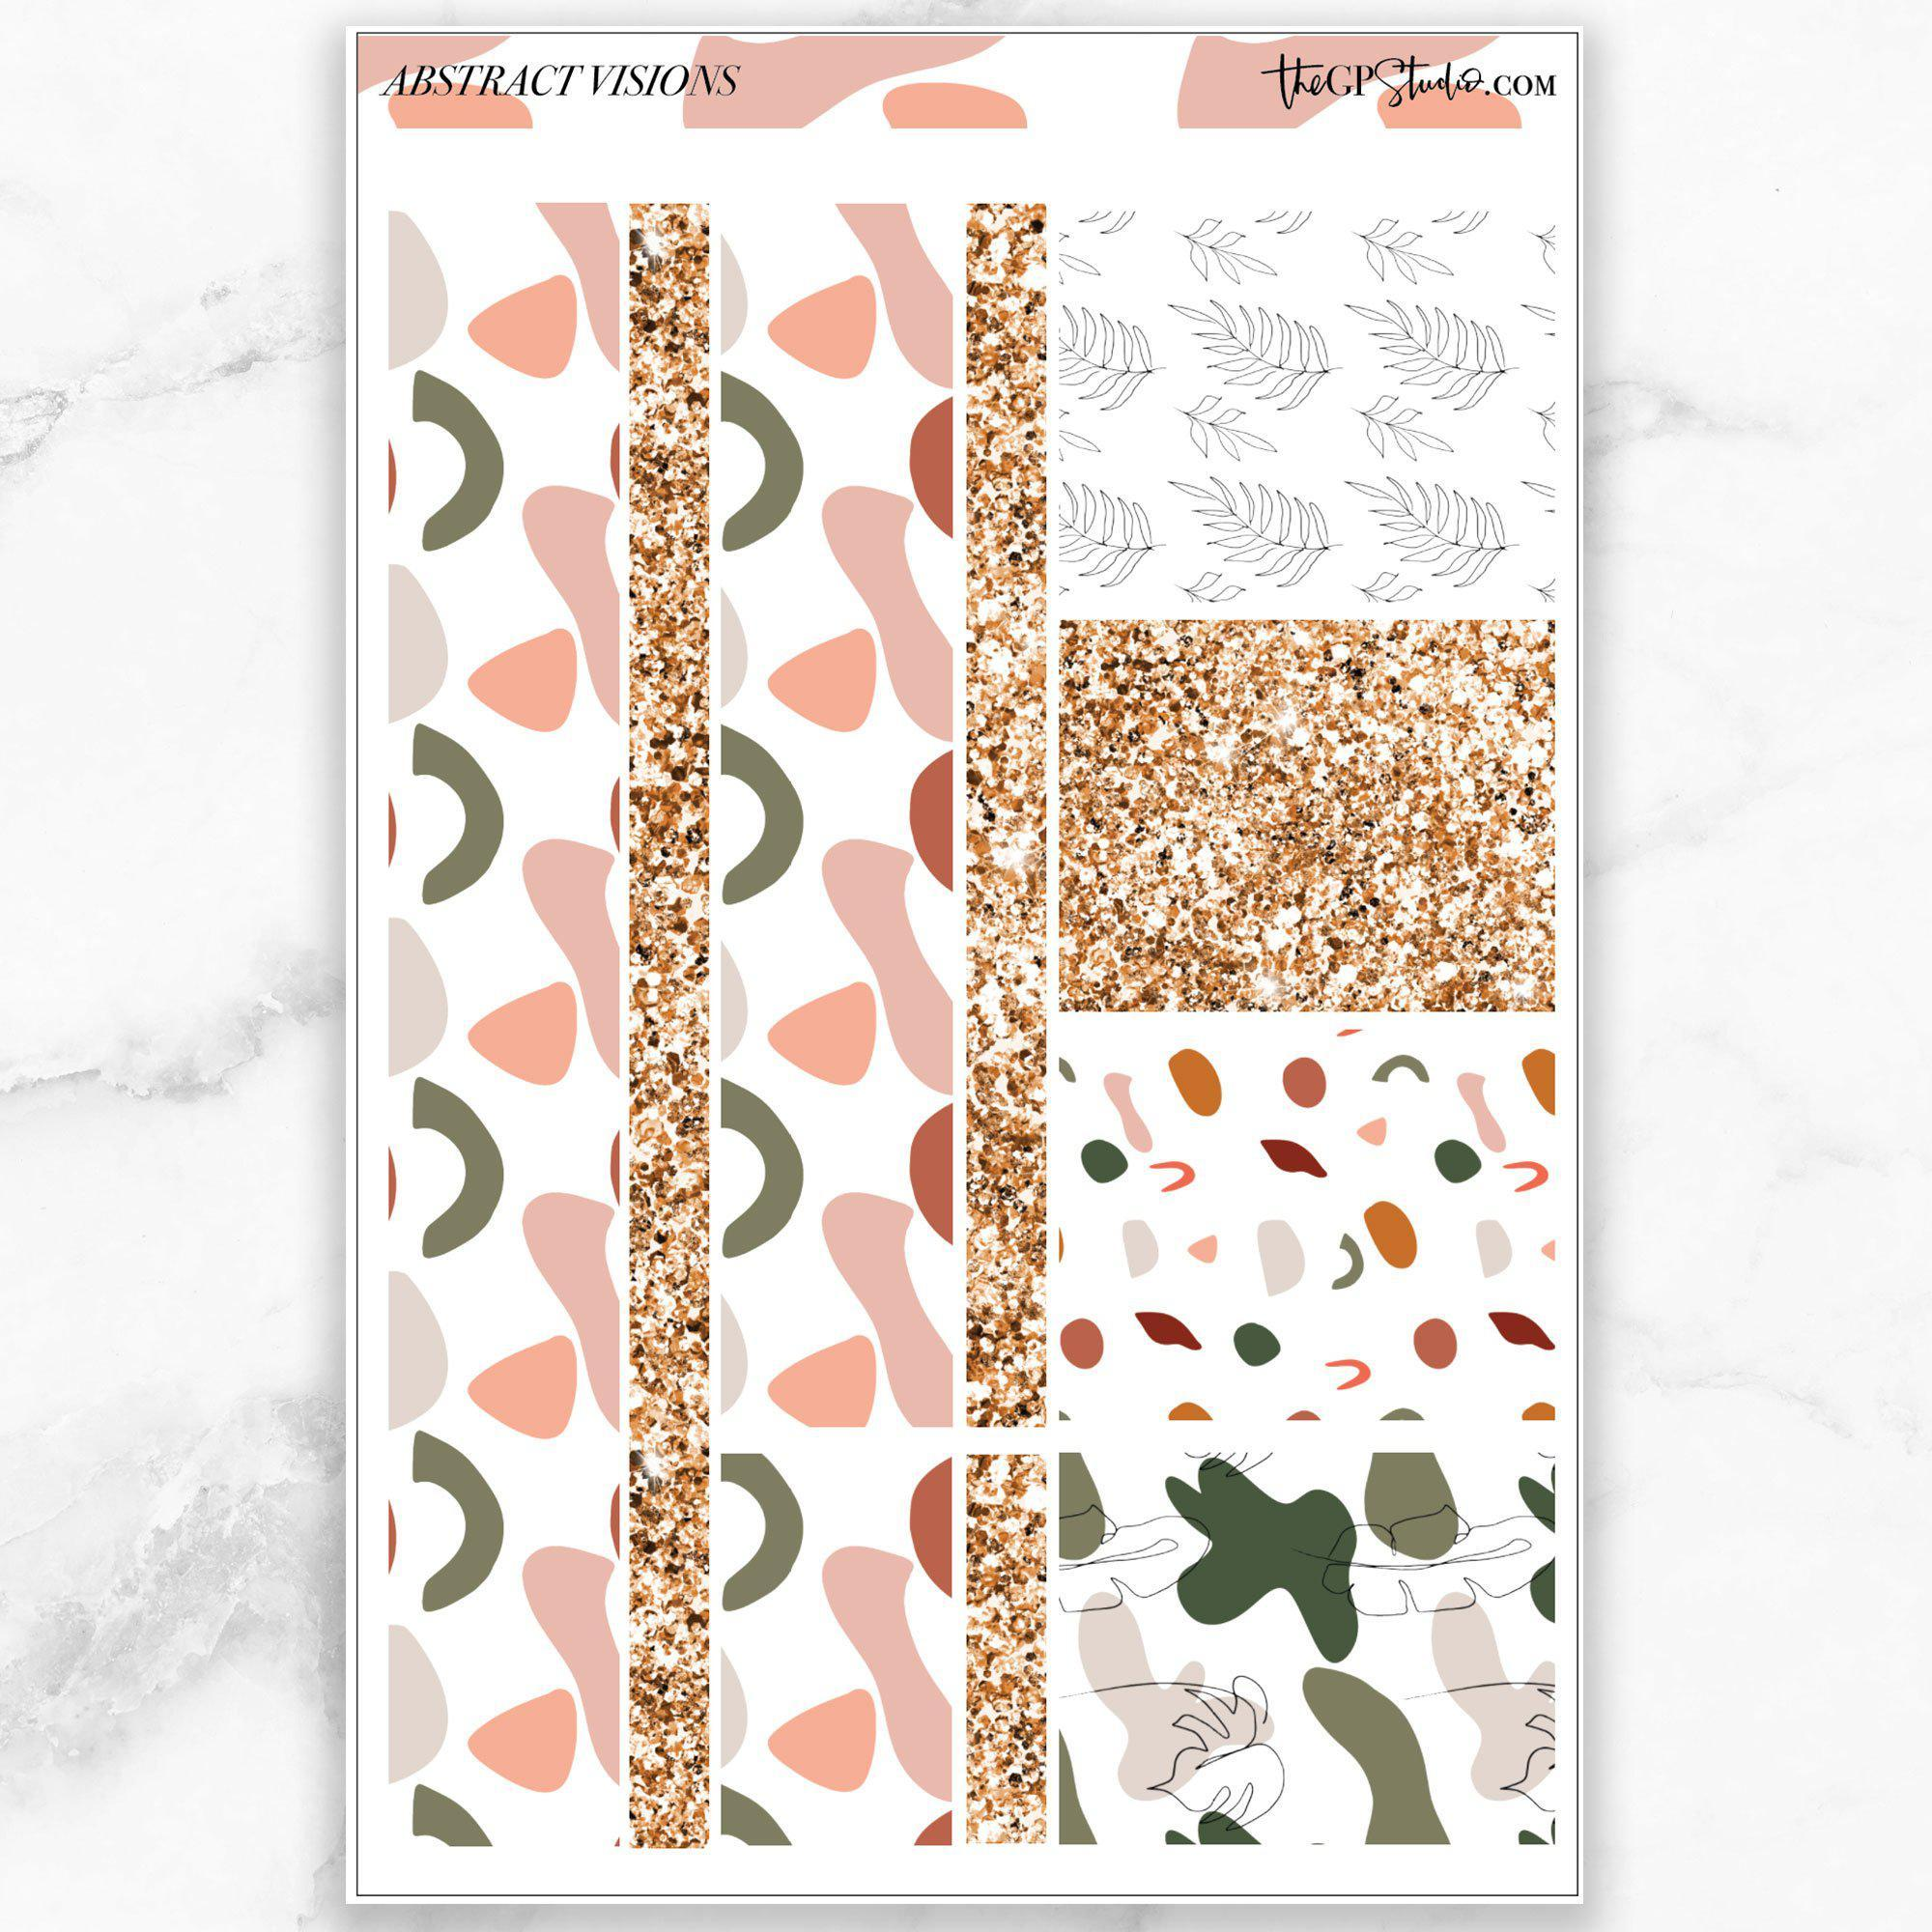 ABSTRACT VISIONS Washi Sheet Stickers-The GP Studio